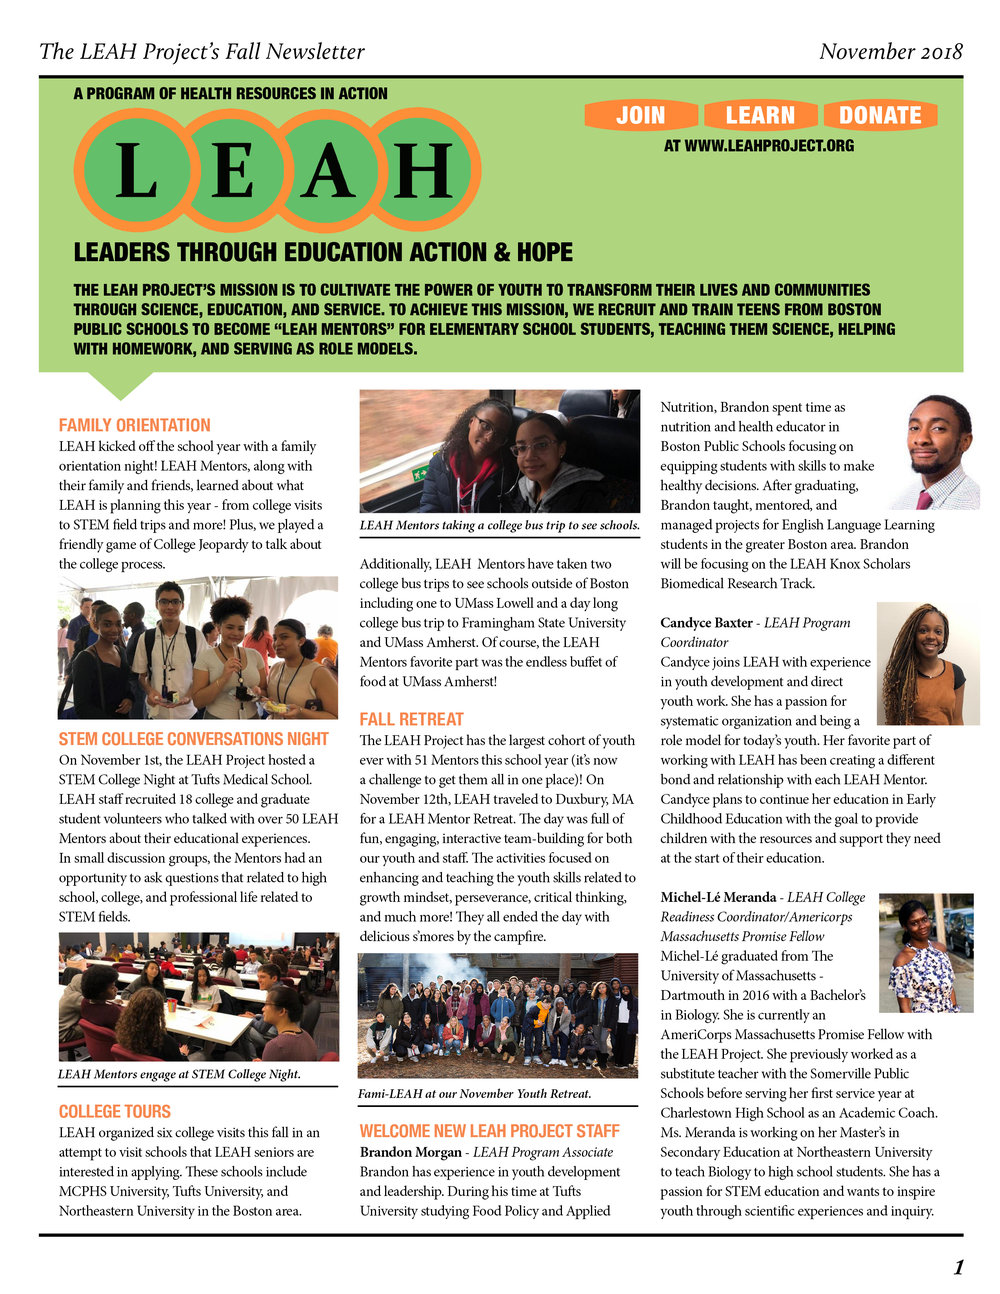 LEAH Newsletter Fall 2018.jpg